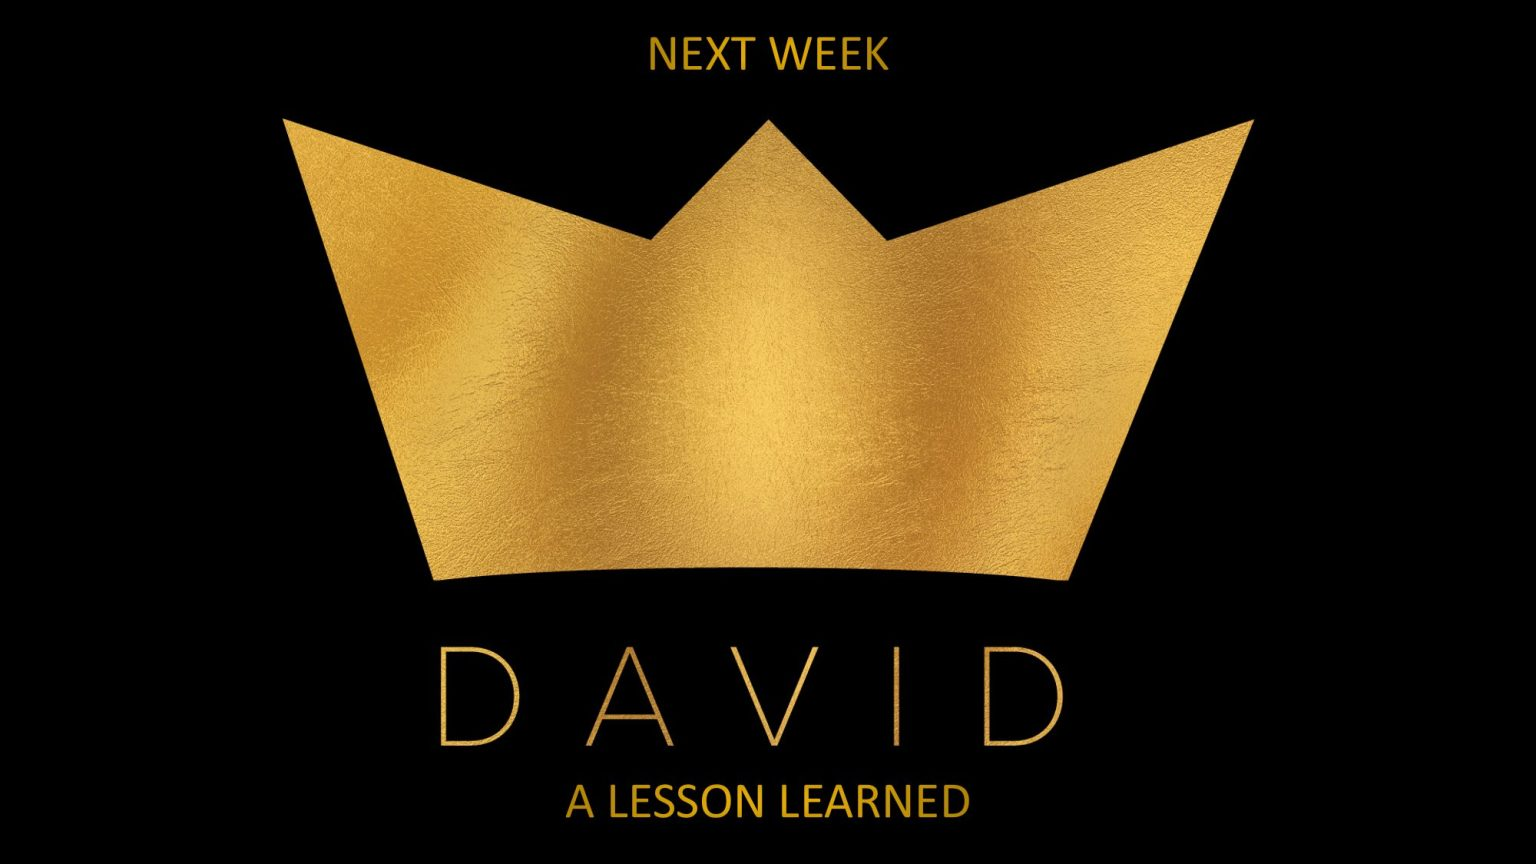 Wk 6 - A lesson learned